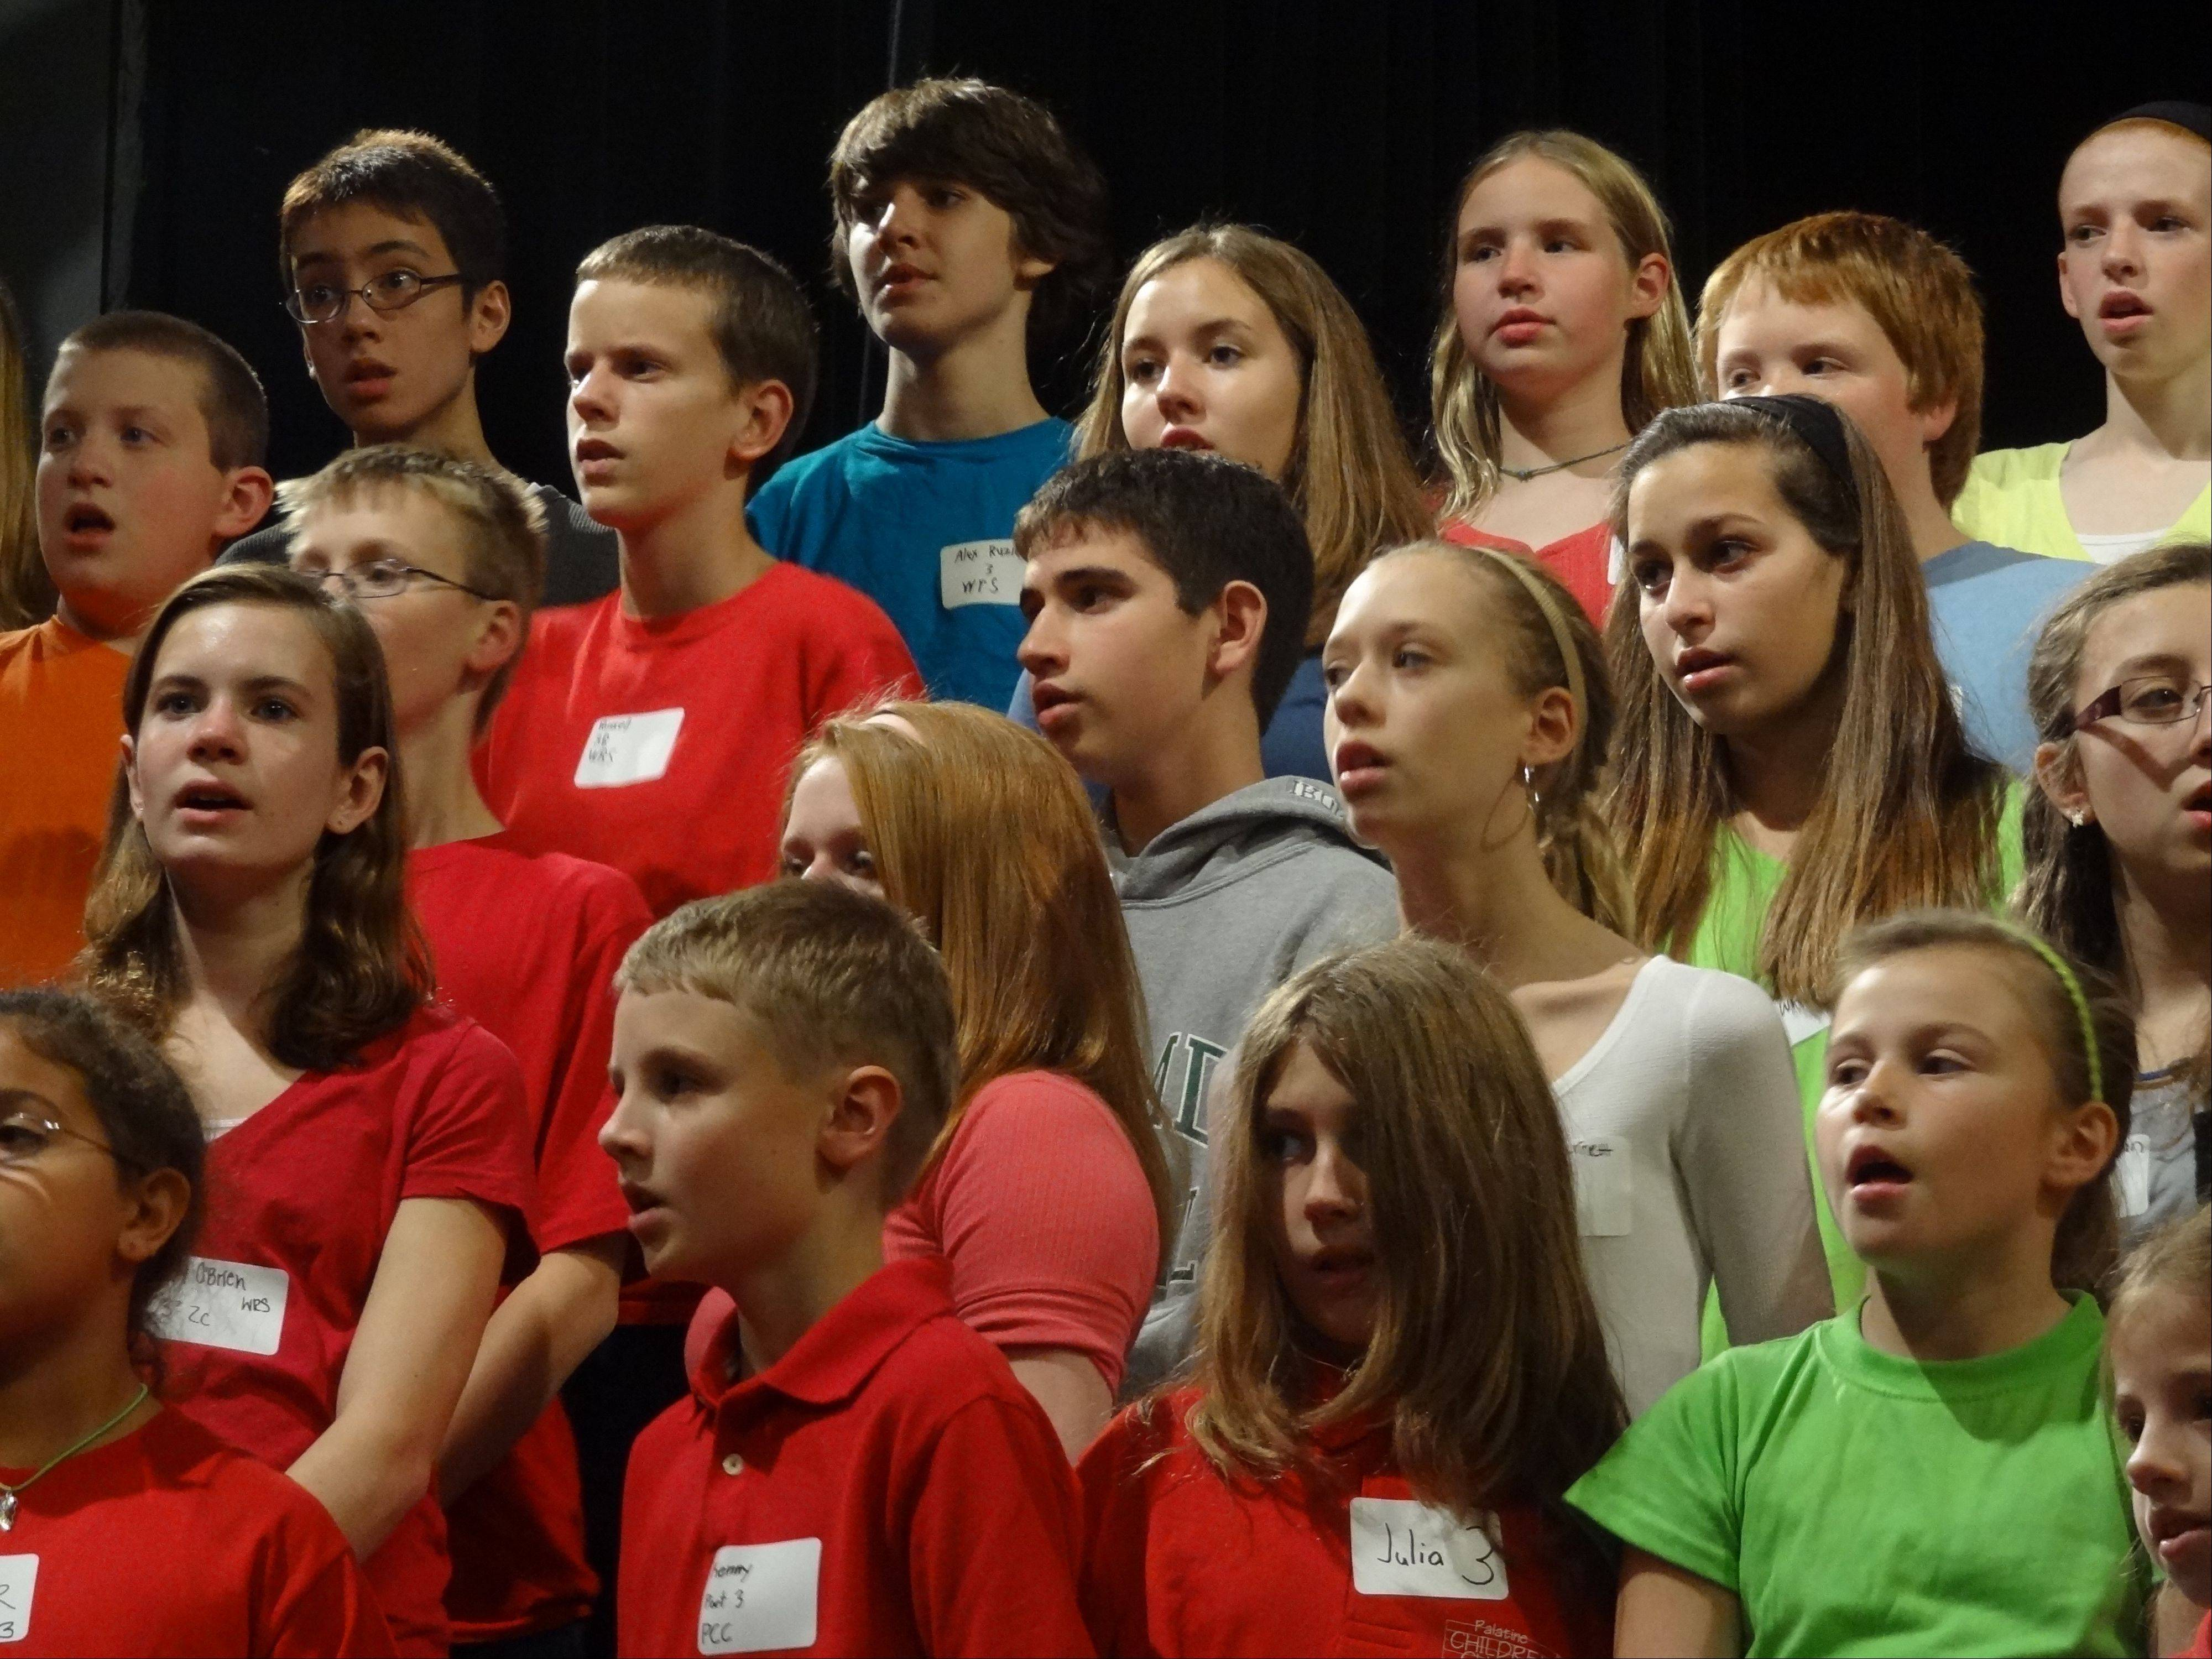 The Palatine Children's Chorus hosts its third annual One Voice Festival Tuesday, April 2, at Cutting Hall Performing Arts Center, 150 E. Wood St., Palatine.